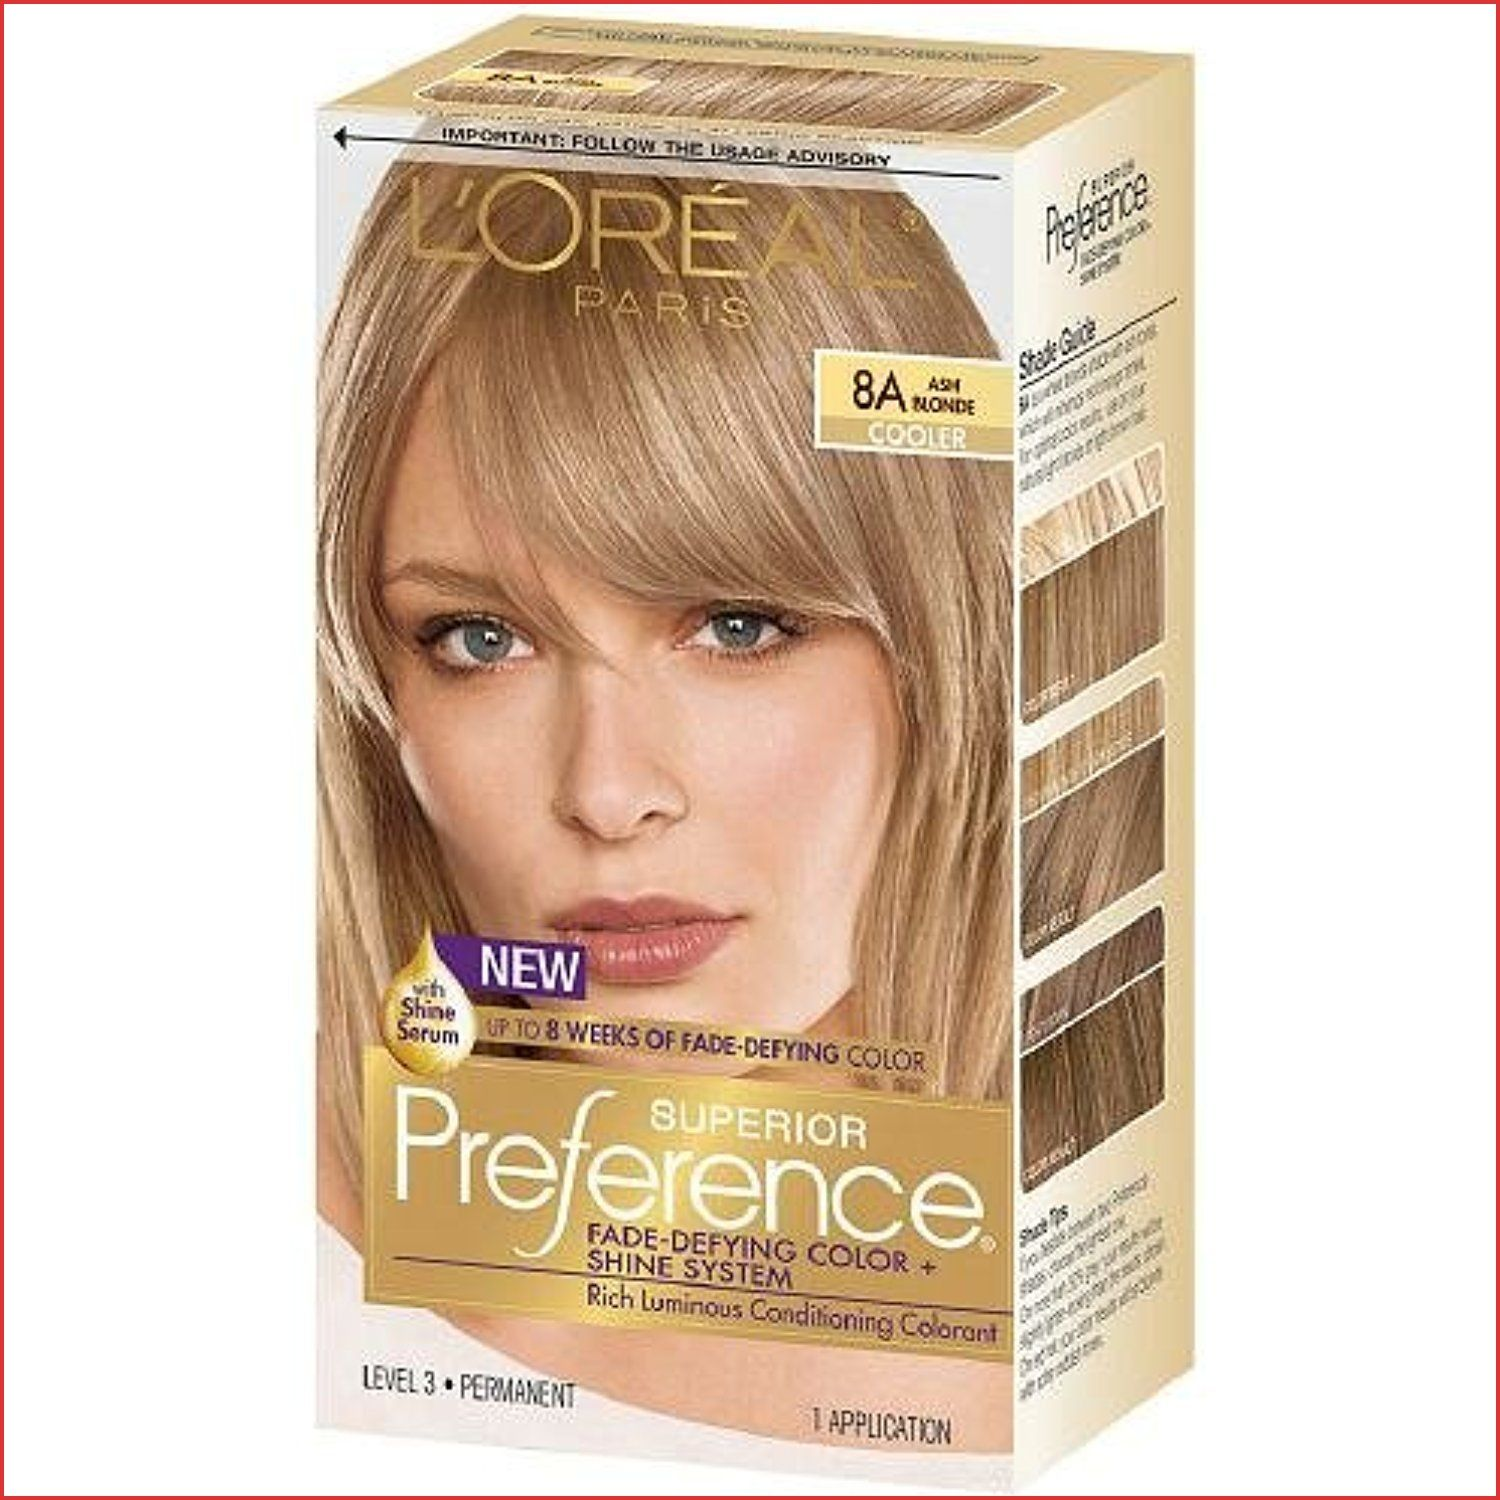 Unique Loreal Ash Blonde Hair Color Photograph Of Hairstyle Ideas